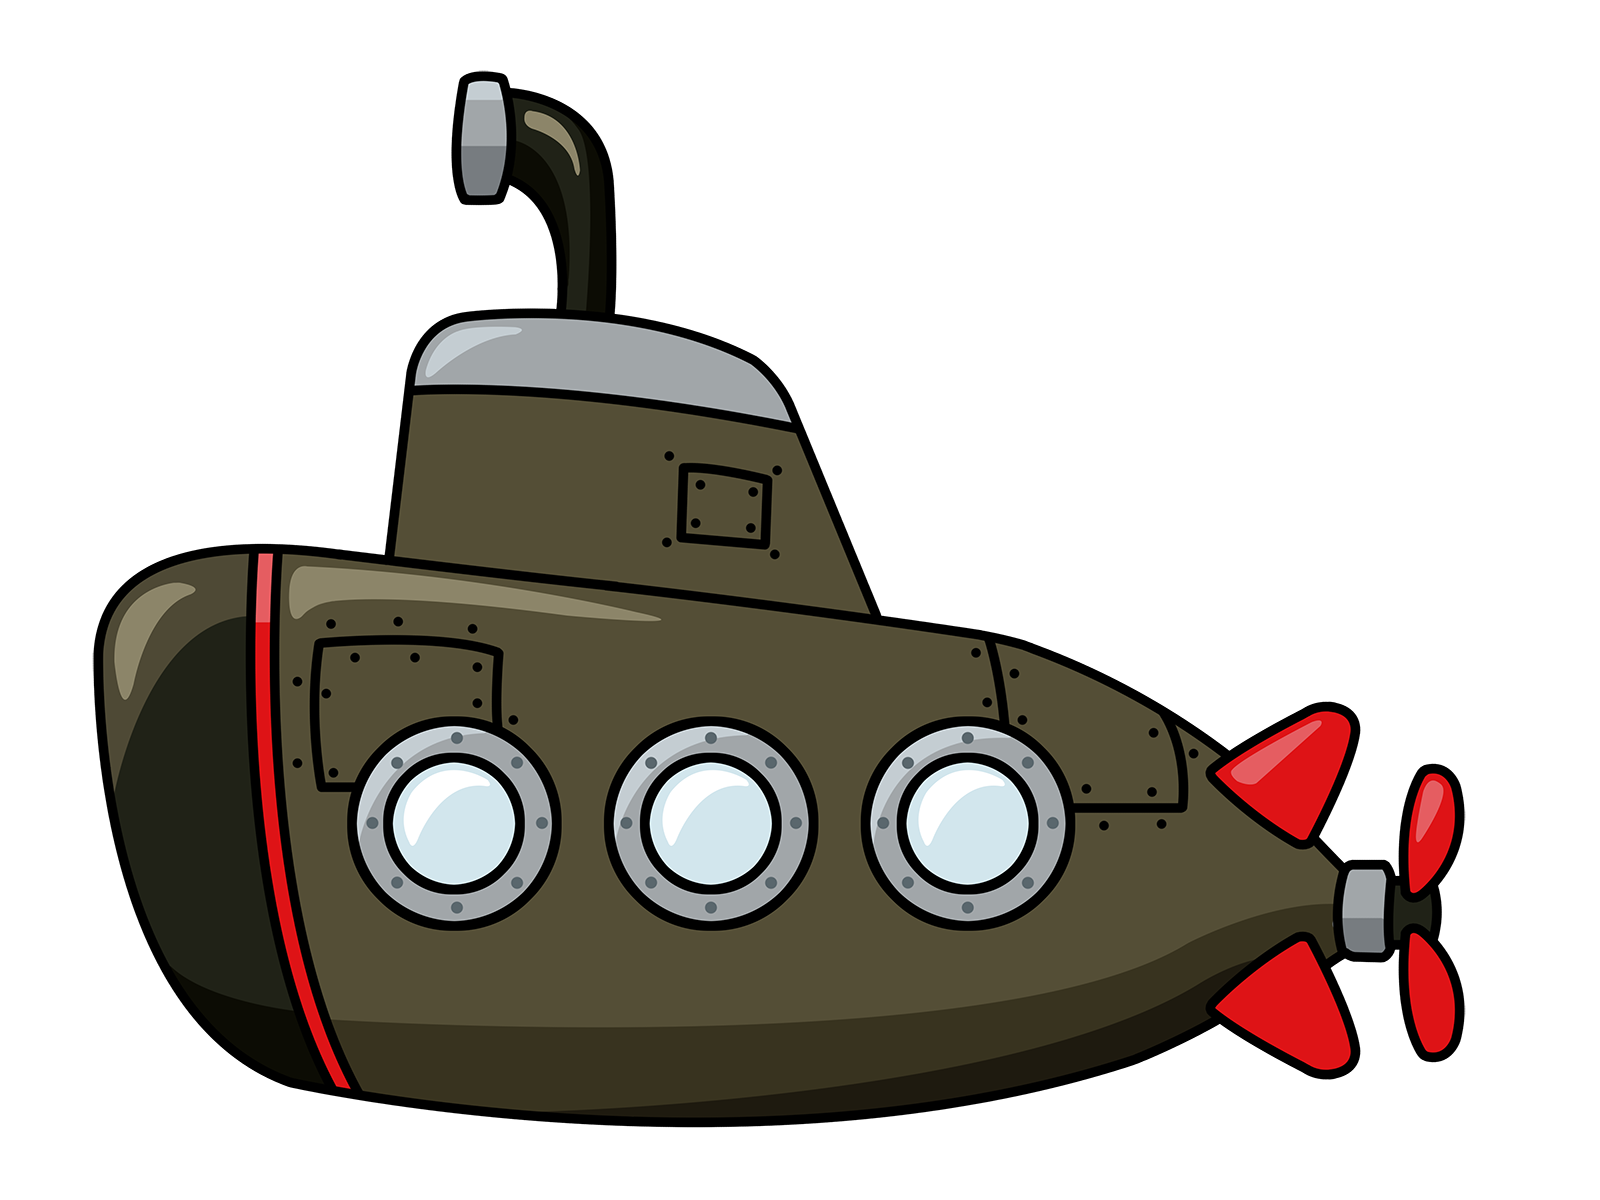 Submarine clipart. Panda free images conklin